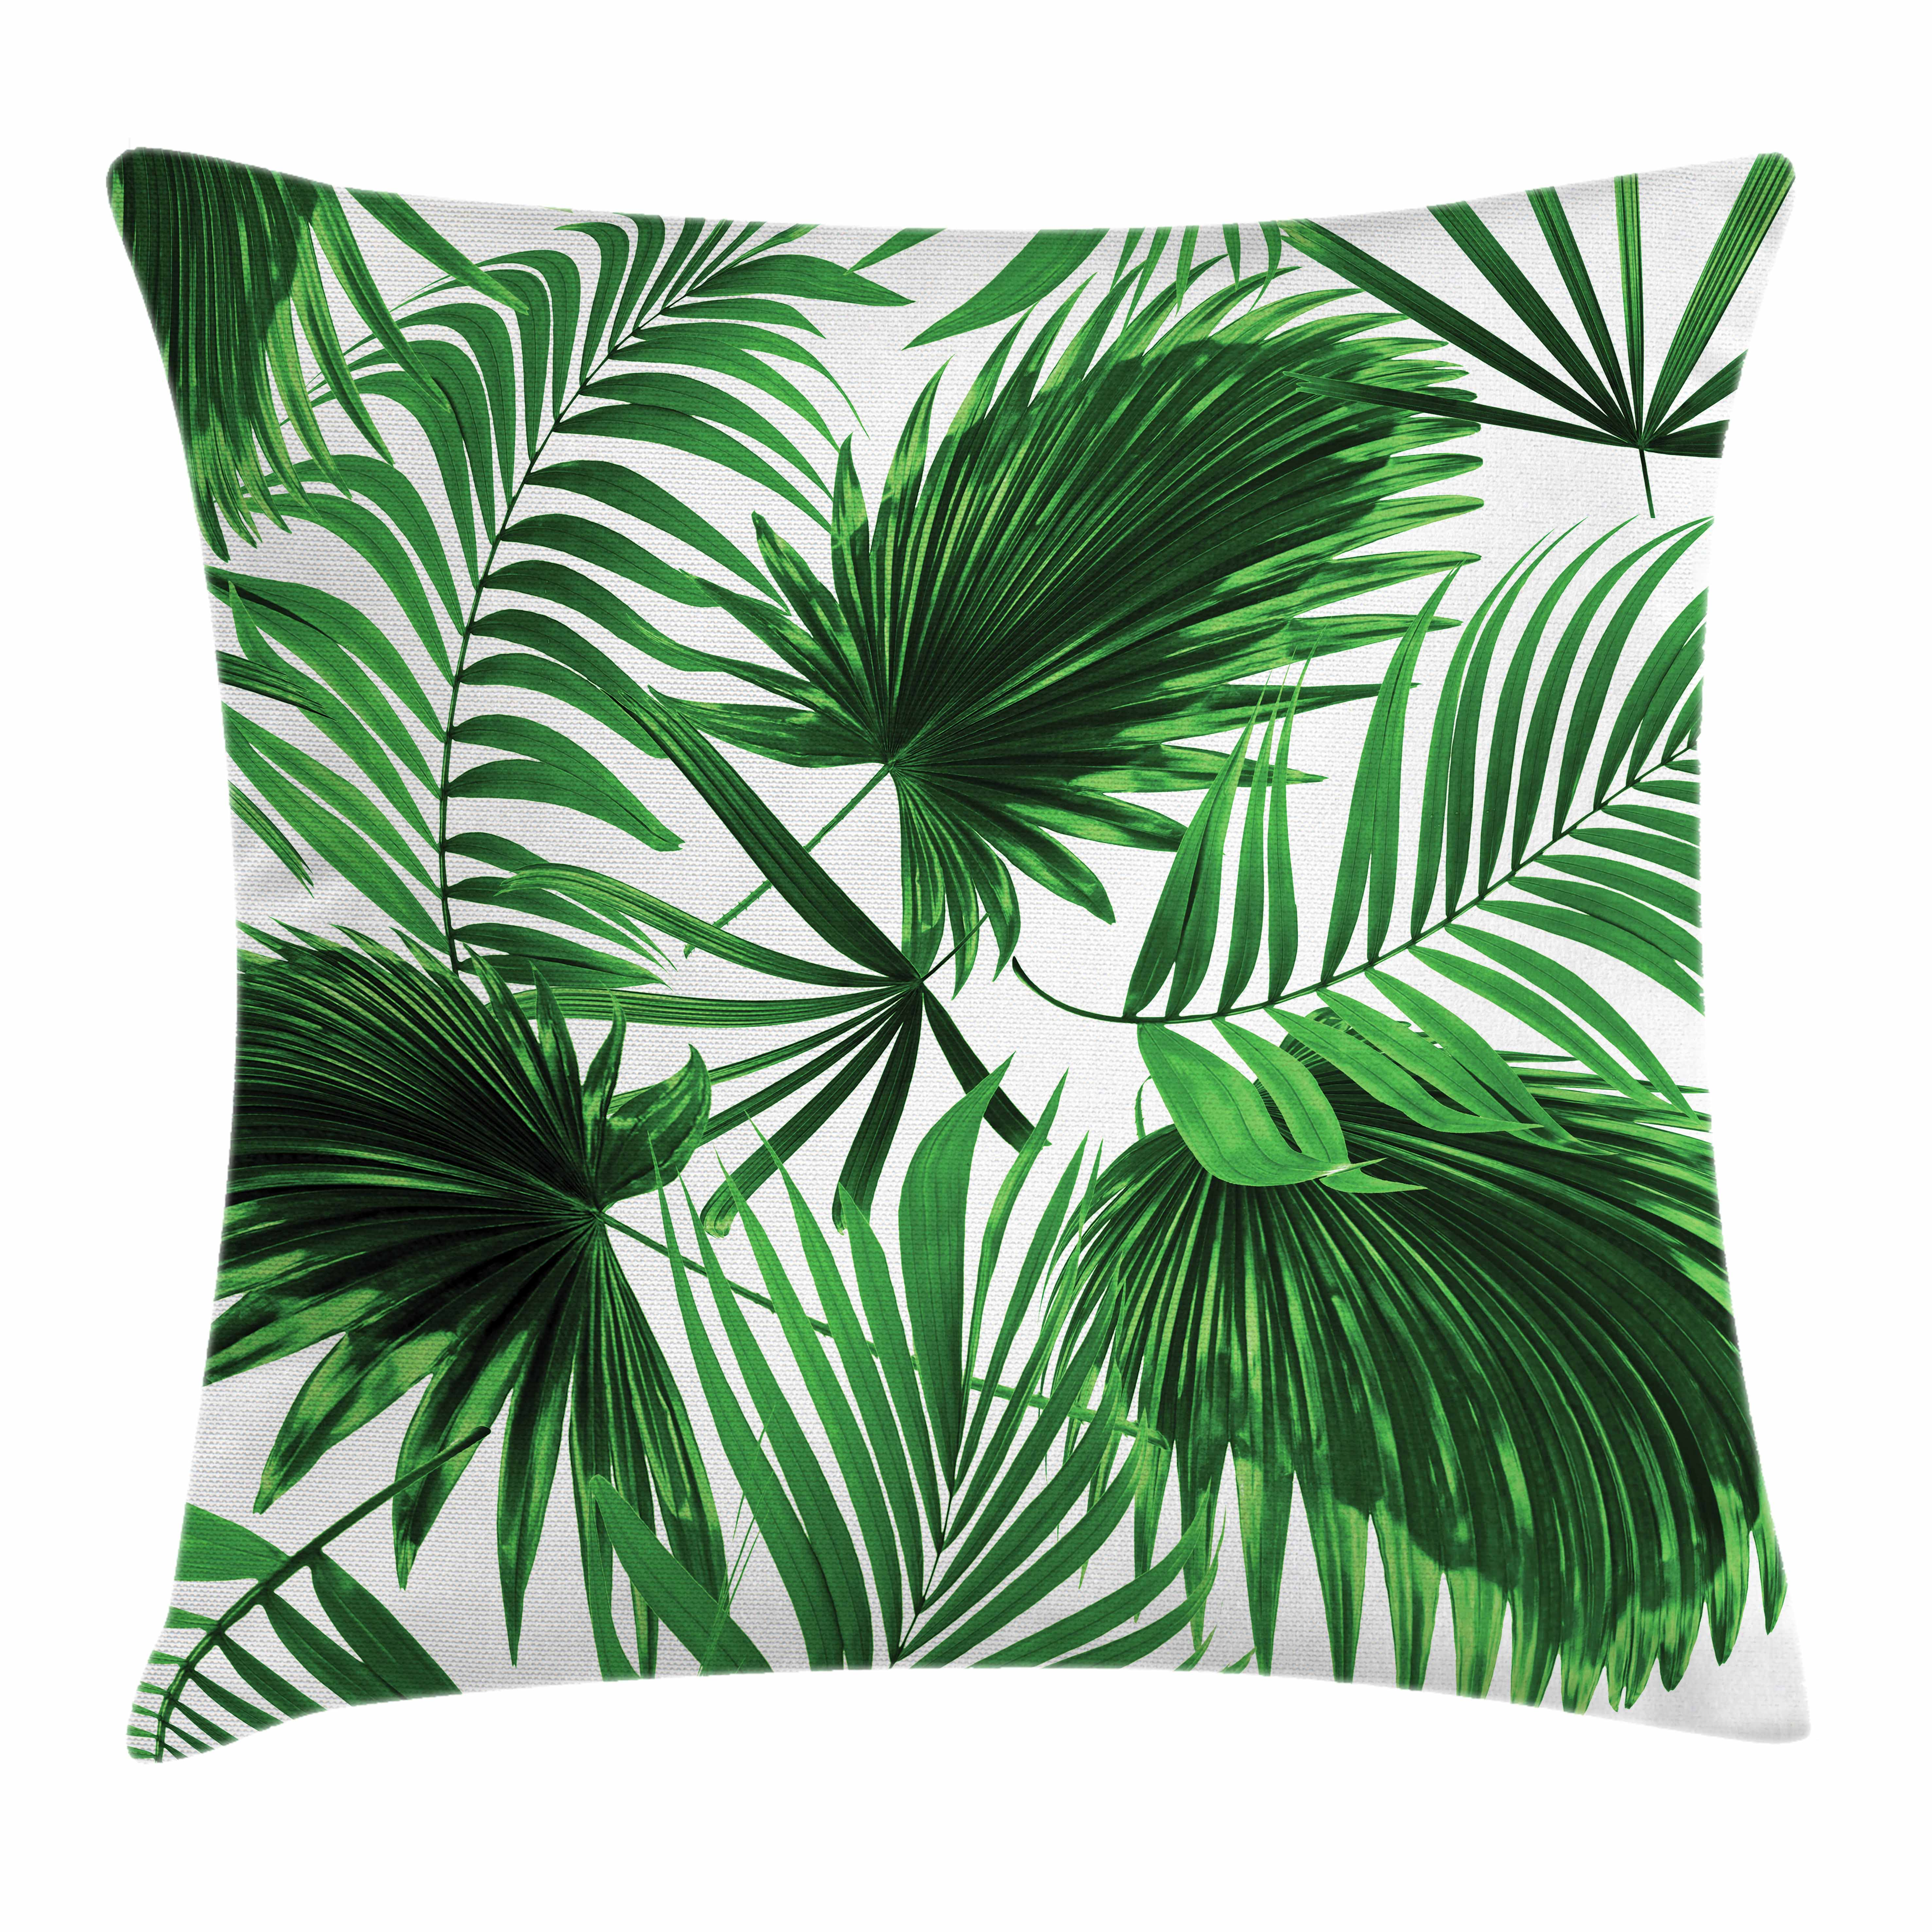 Palm Leaf Throw Pillow Cushion Cover, Realistic Vivid Leaves of Palm Tree Growth Ecology Lush Botany Themed Print, Decorative Square Accent Pillow Case, 18 X 18 Inches, Fern Green White, by Ambesonne